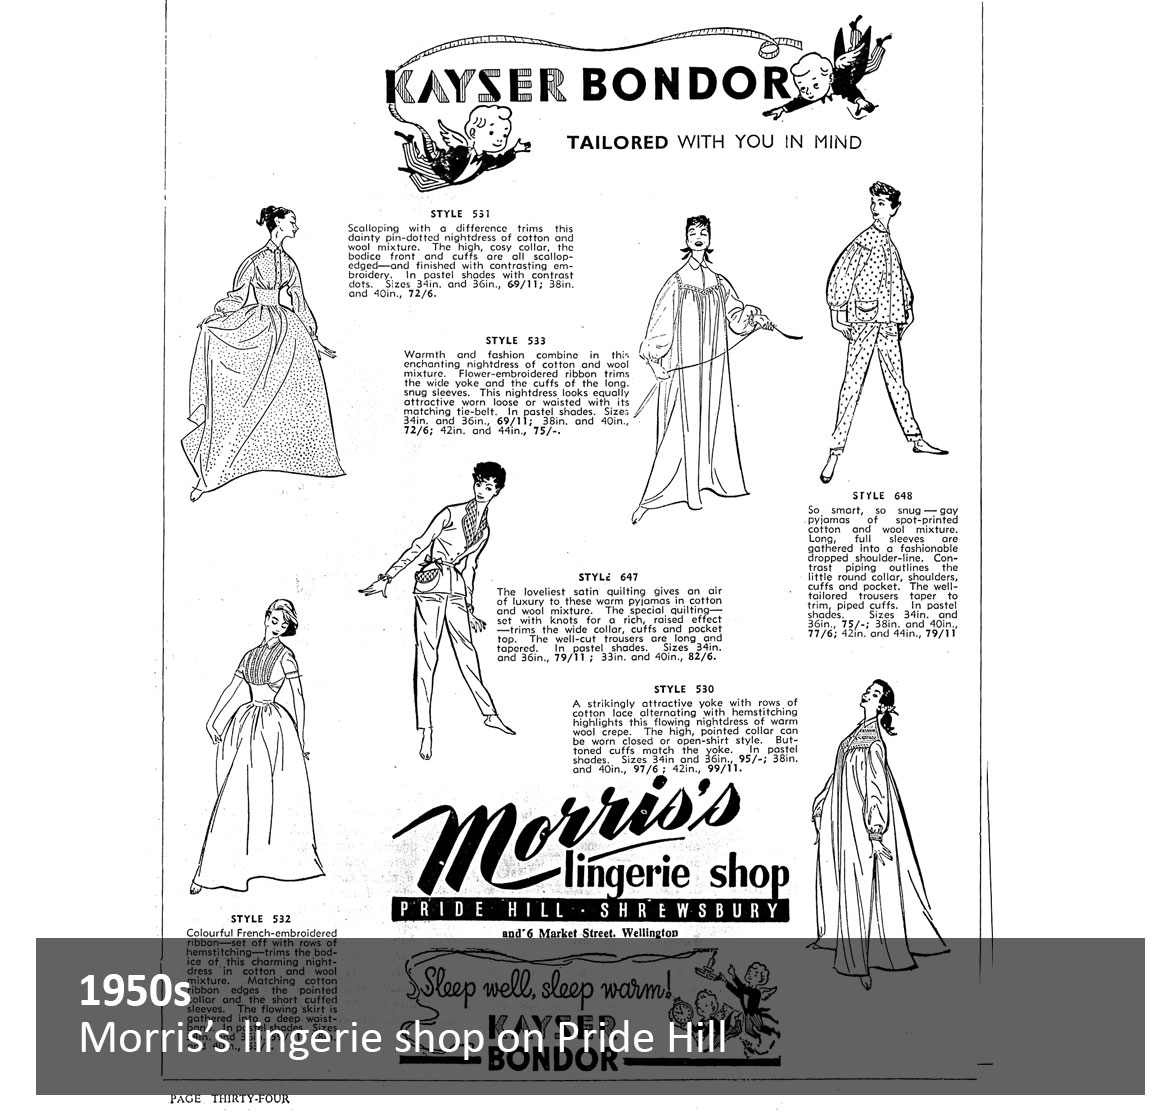 Morris's lingerie shop on Pride Hill